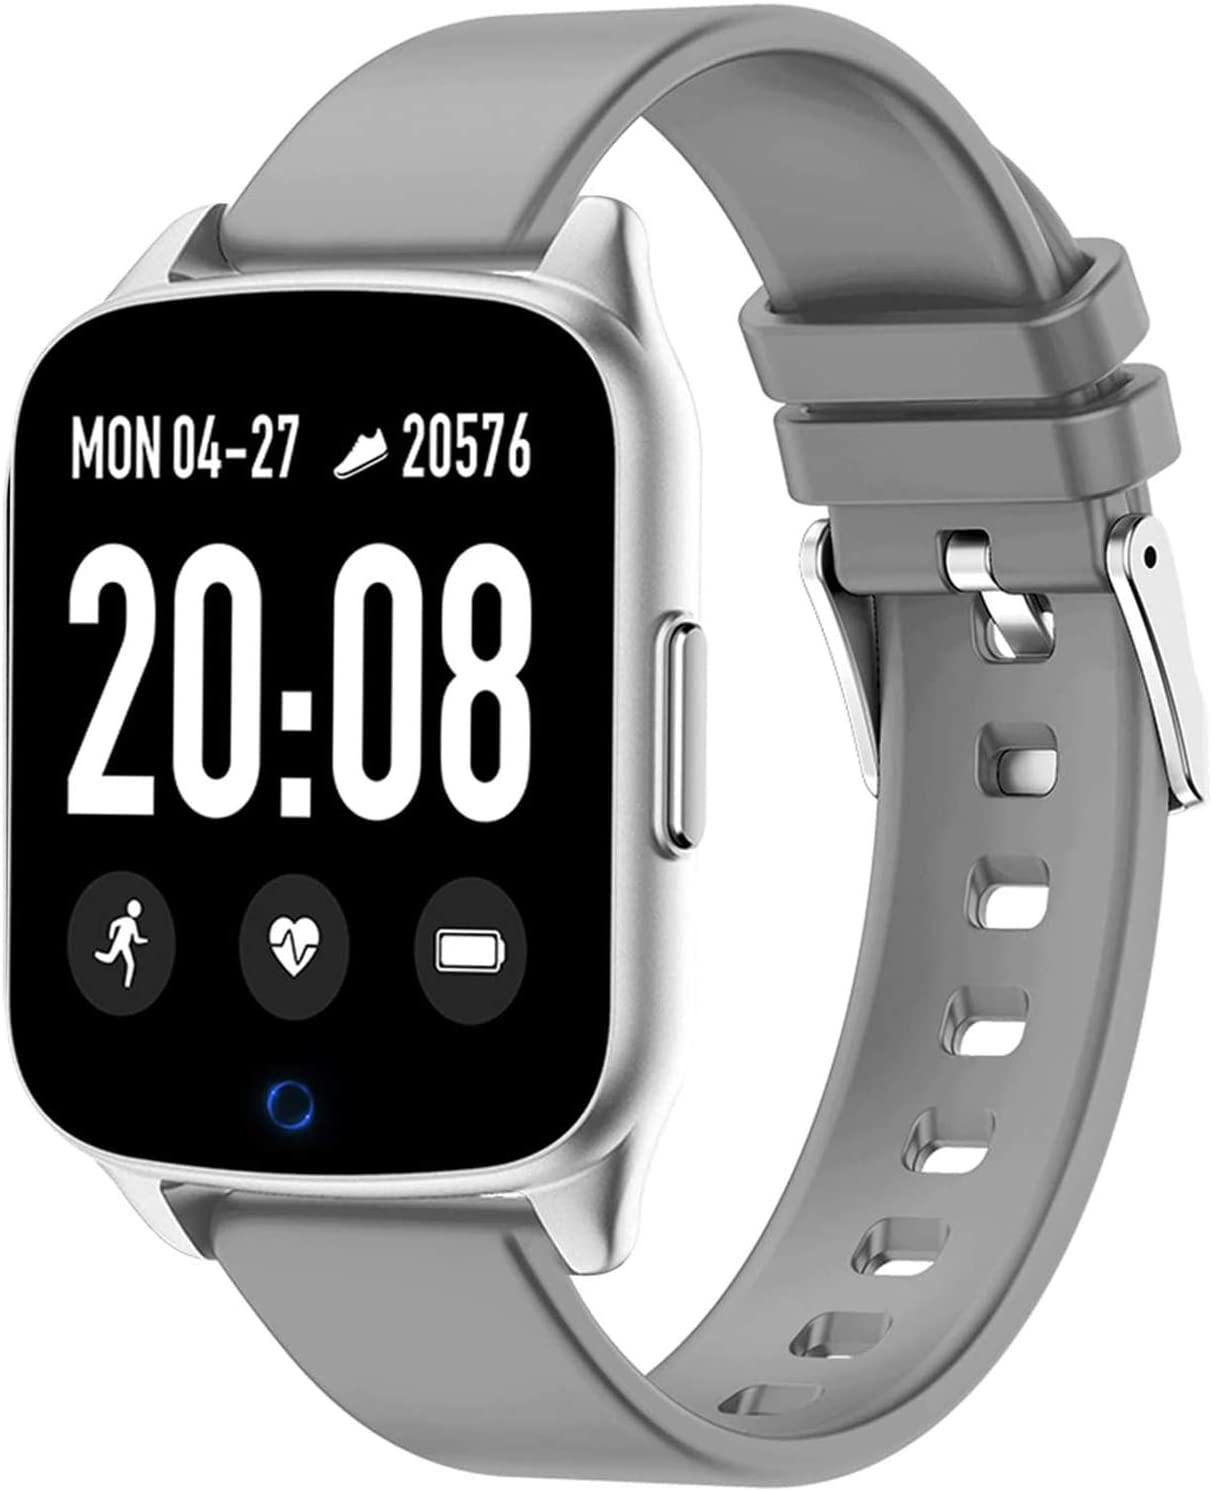 DOOK Smart Watch 2020 New Version, 1.3 Touch Screen Watches for Men Women Pedometer, Fitness Tracker Blood Oxygen Meter Heart Rate Monitor IP68 Waterproof,Compatible with iPhone Android Phones,Gray